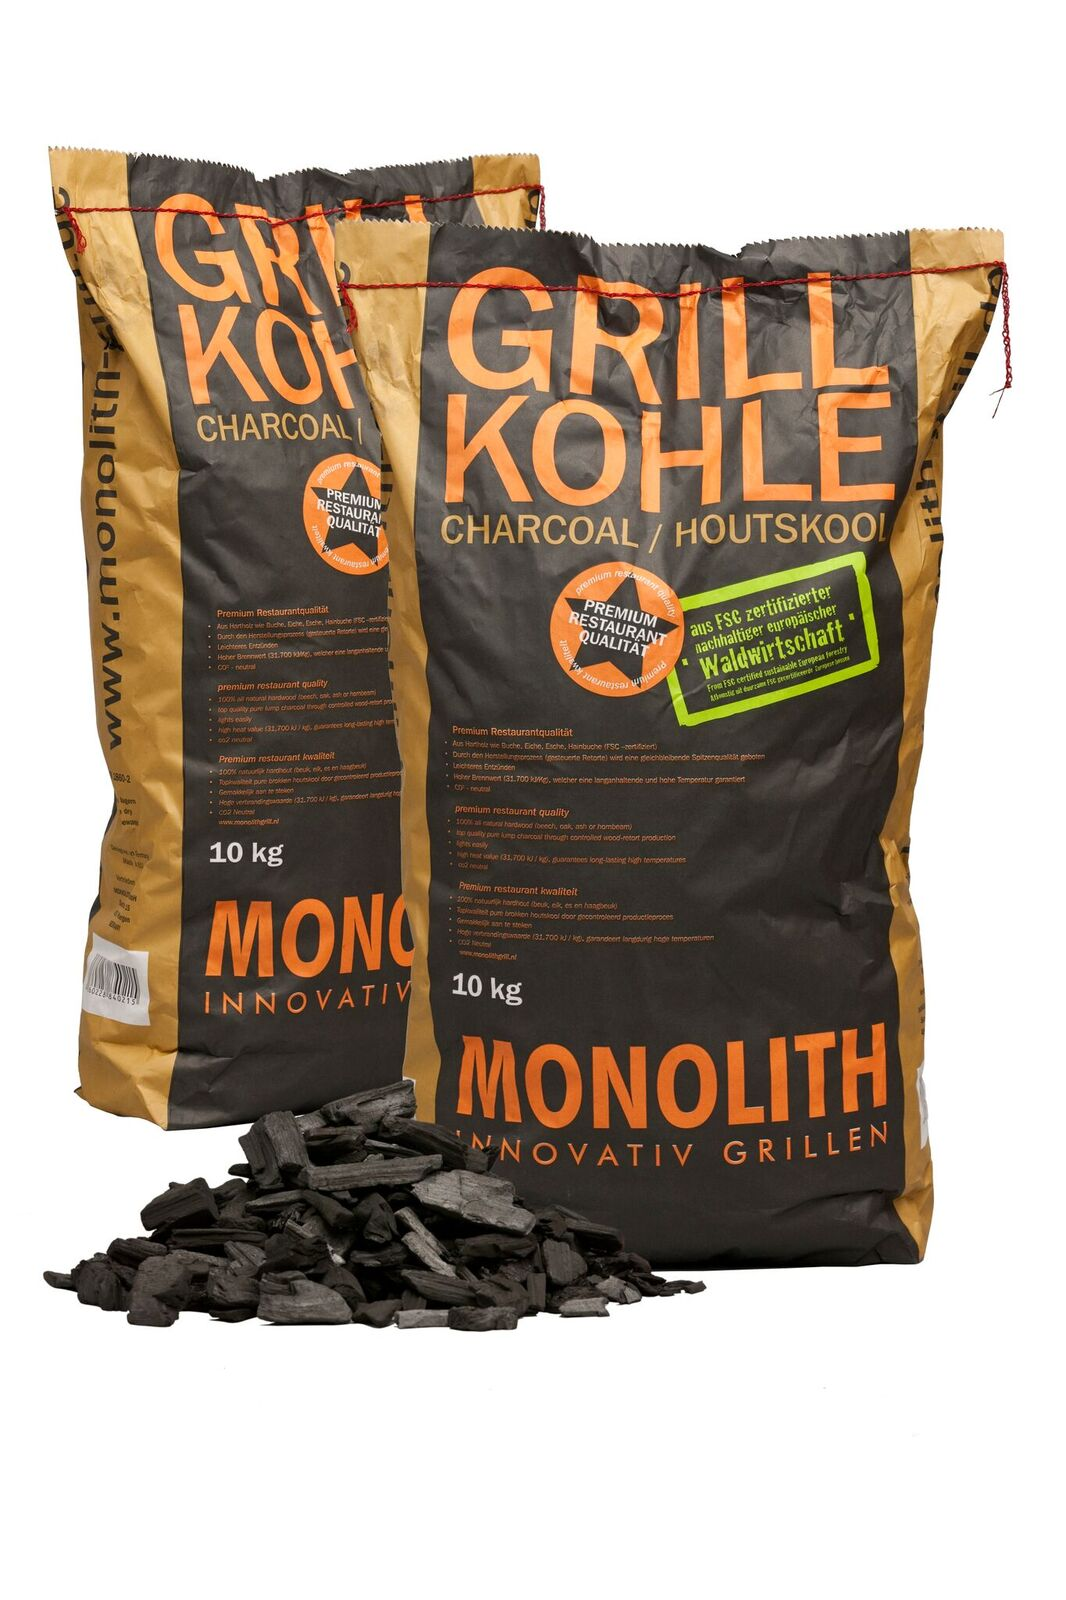 The Best Charcoal For Kamado Cooking In A 20Kg Bundle